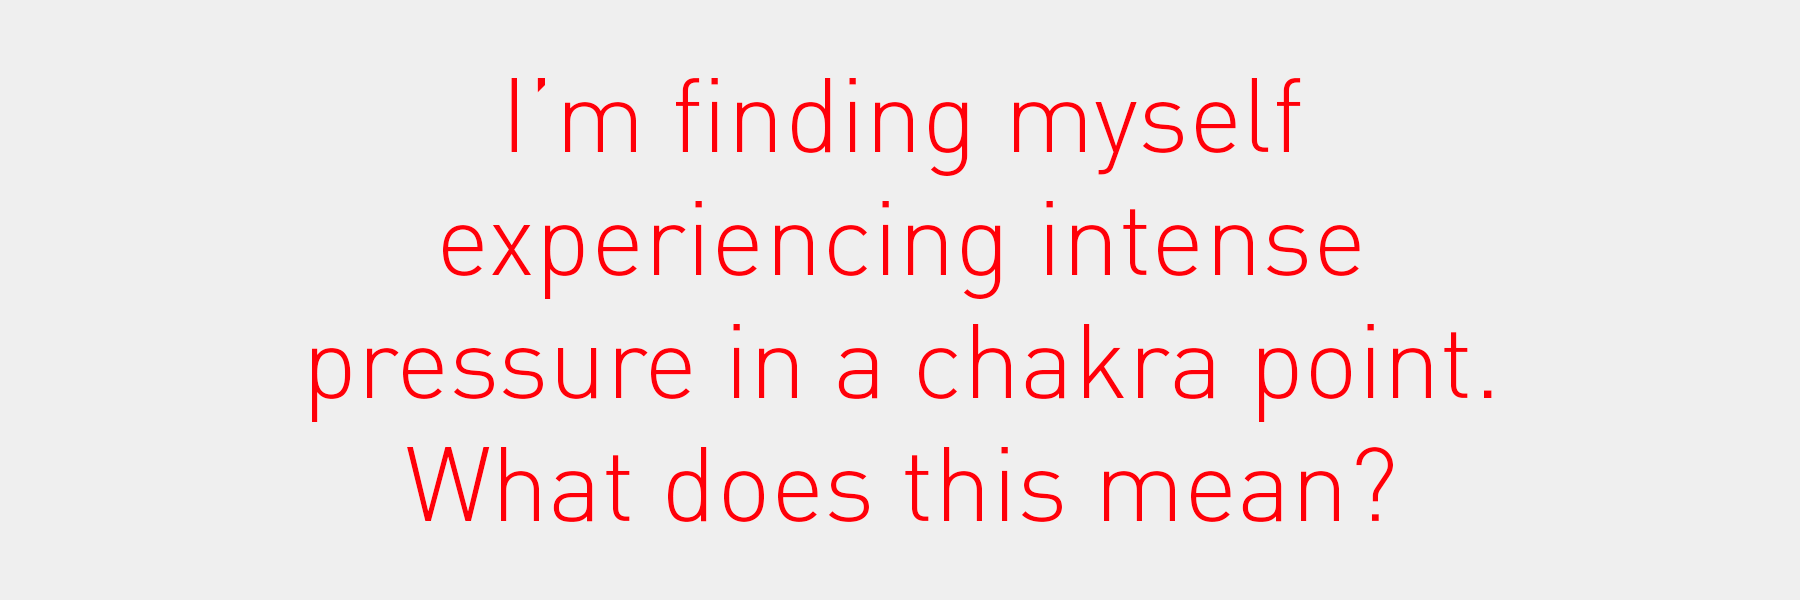 I'm finding myself experiencing intense pressure in [a chakra point]. What does this mean?